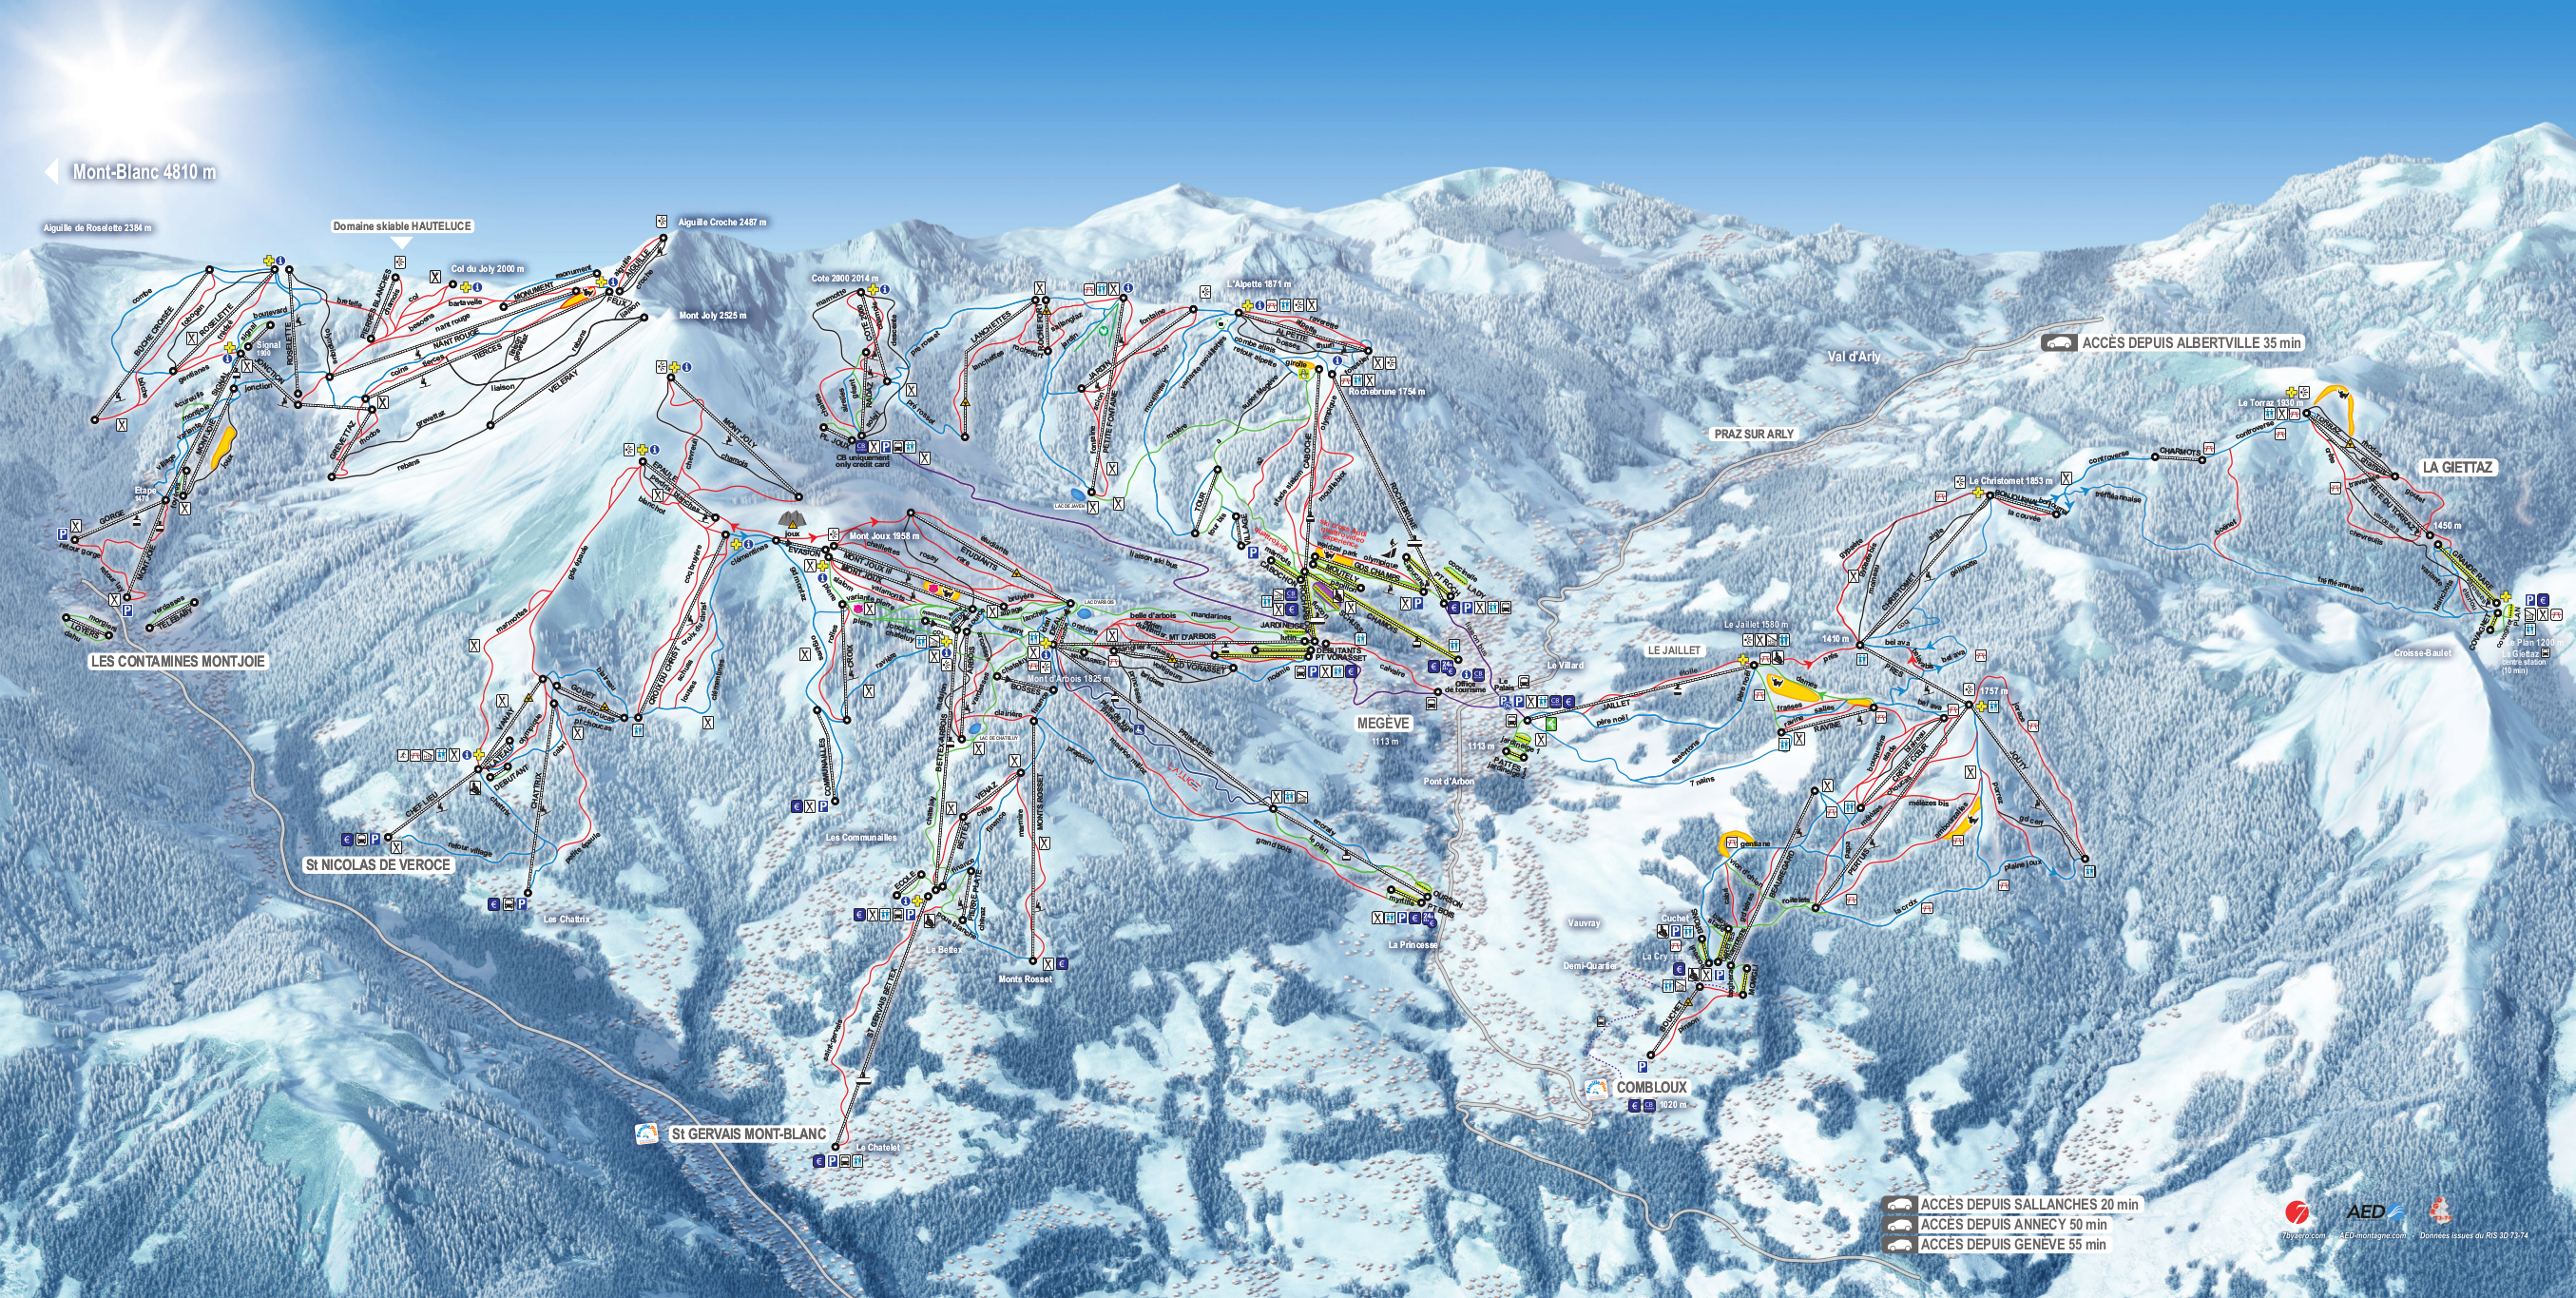 La Giettaz Piste / Trail Map